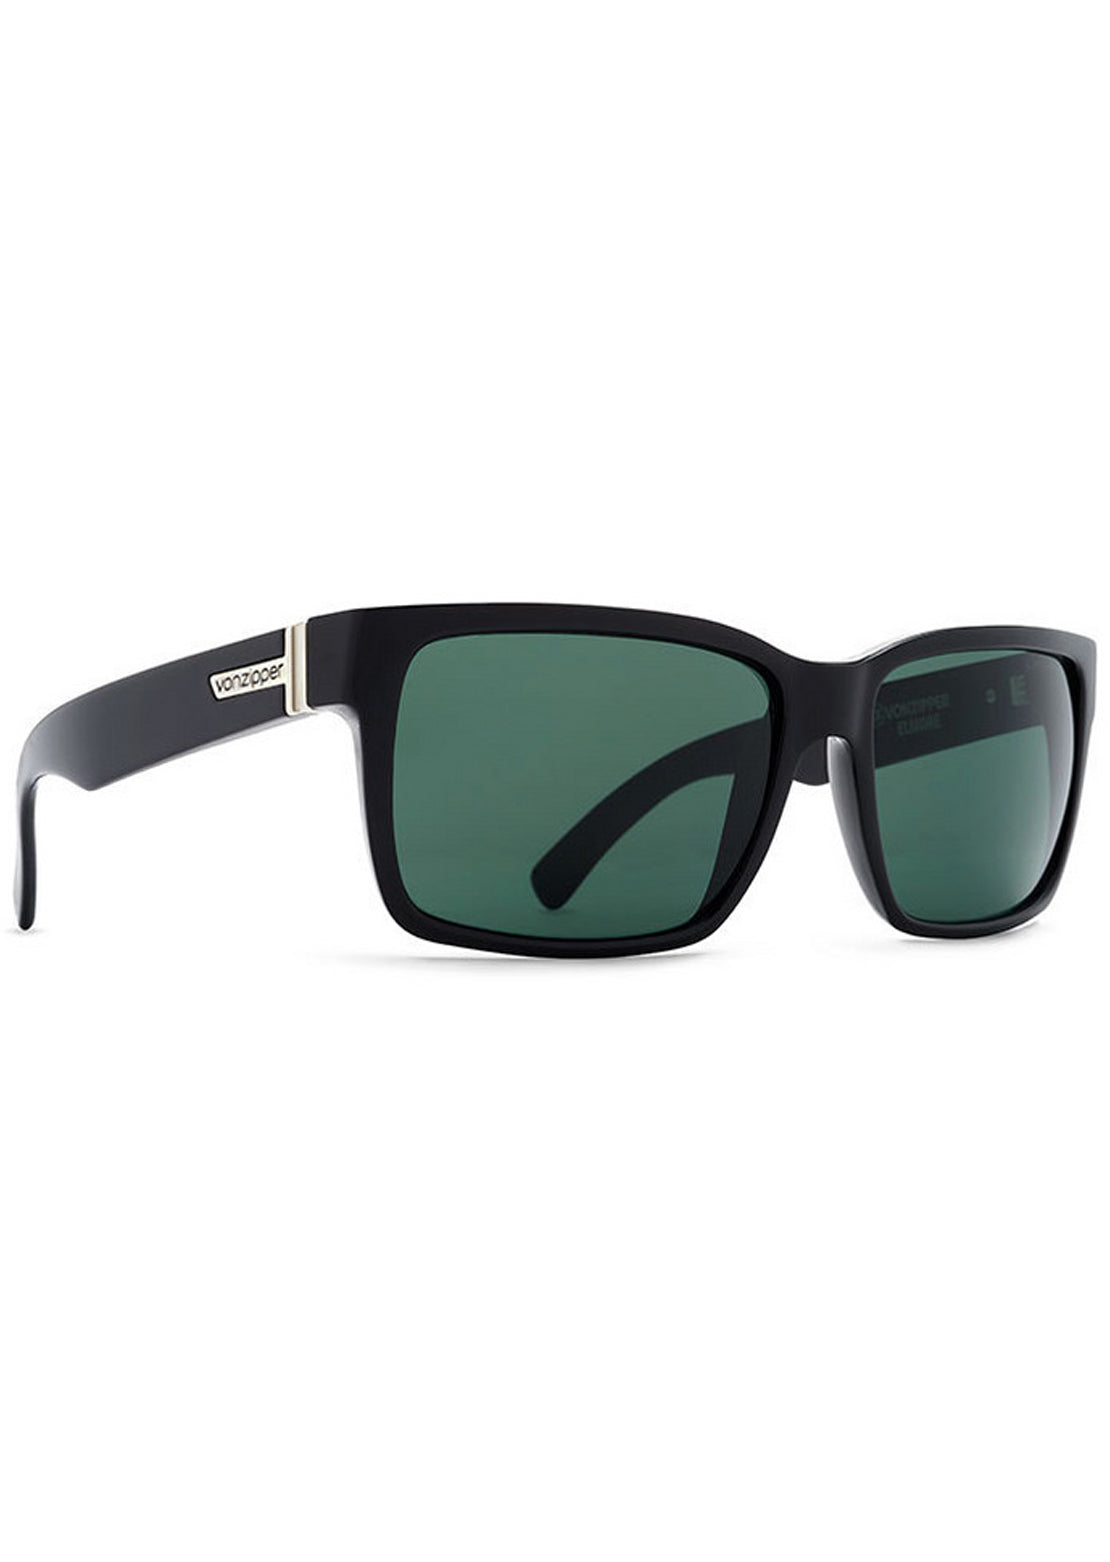 Von Zipper Men's Elmore Sunglasses Black Gloss/Vintage Grey